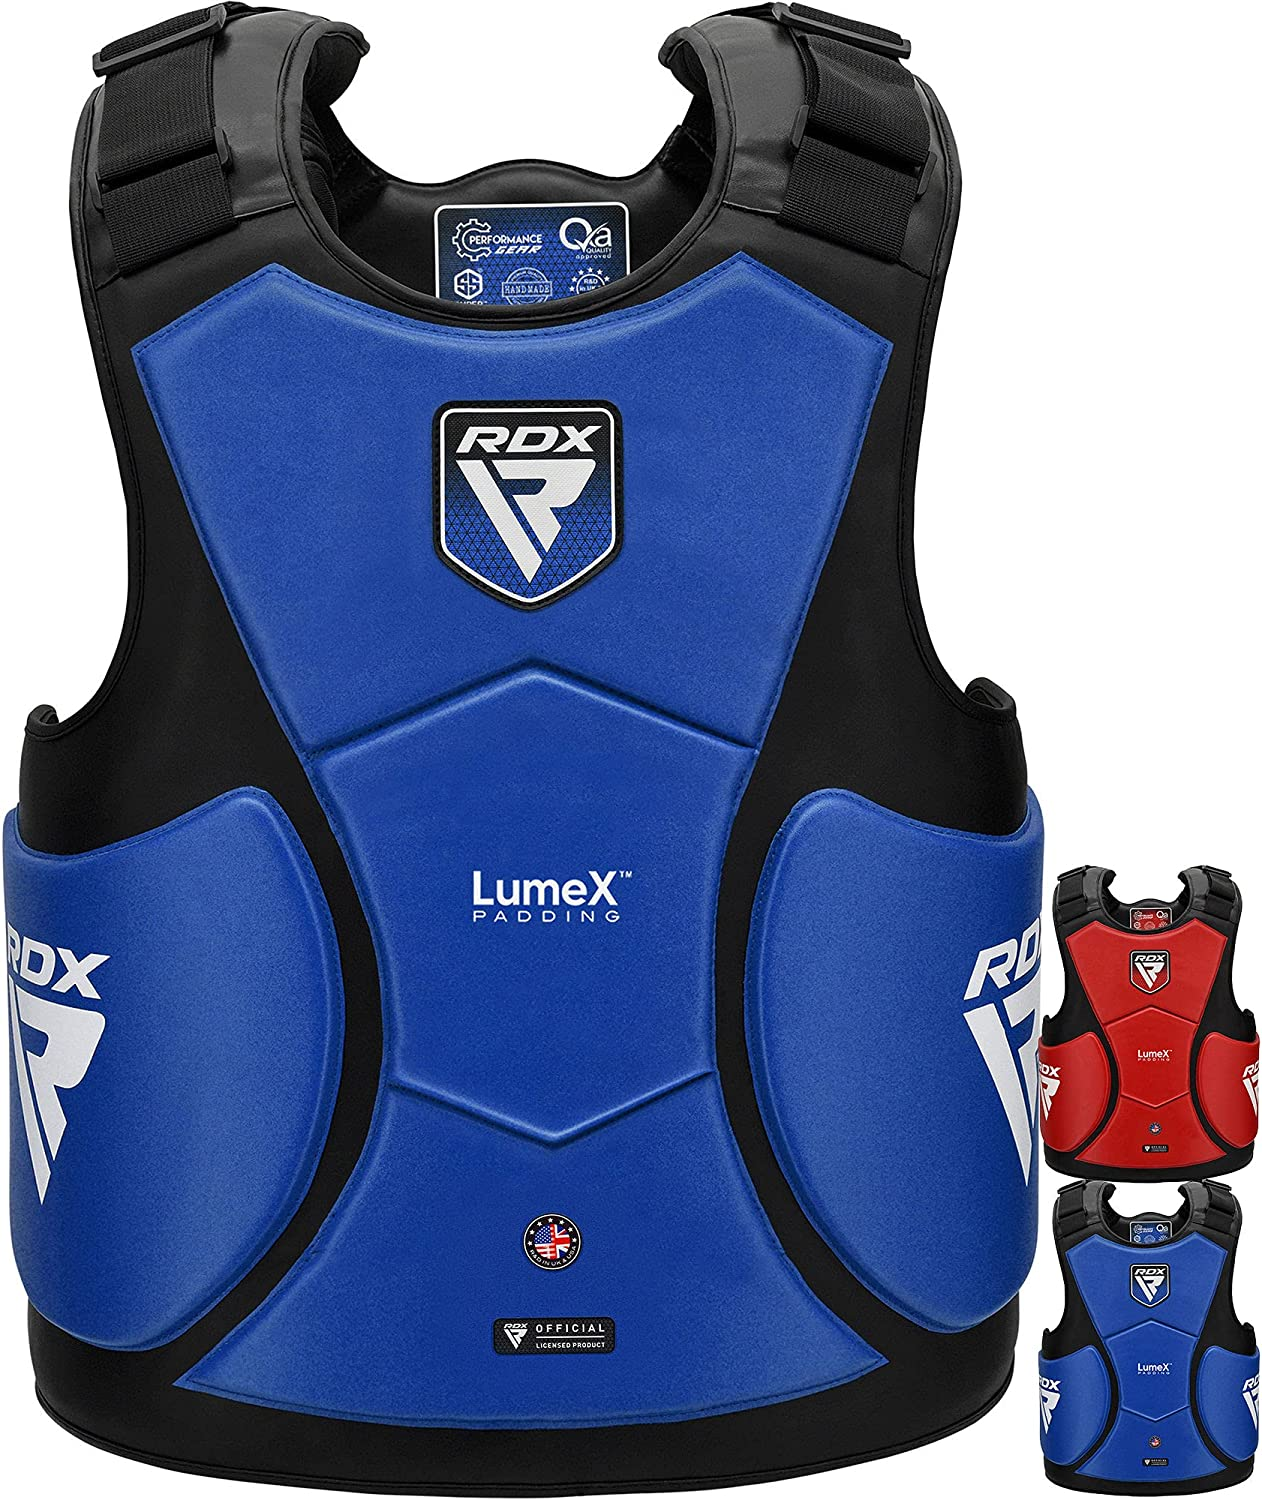 RDX Chest Guard Limited price sale Boxing MMA Training Hide Maya Leather New sales LumeX Pad